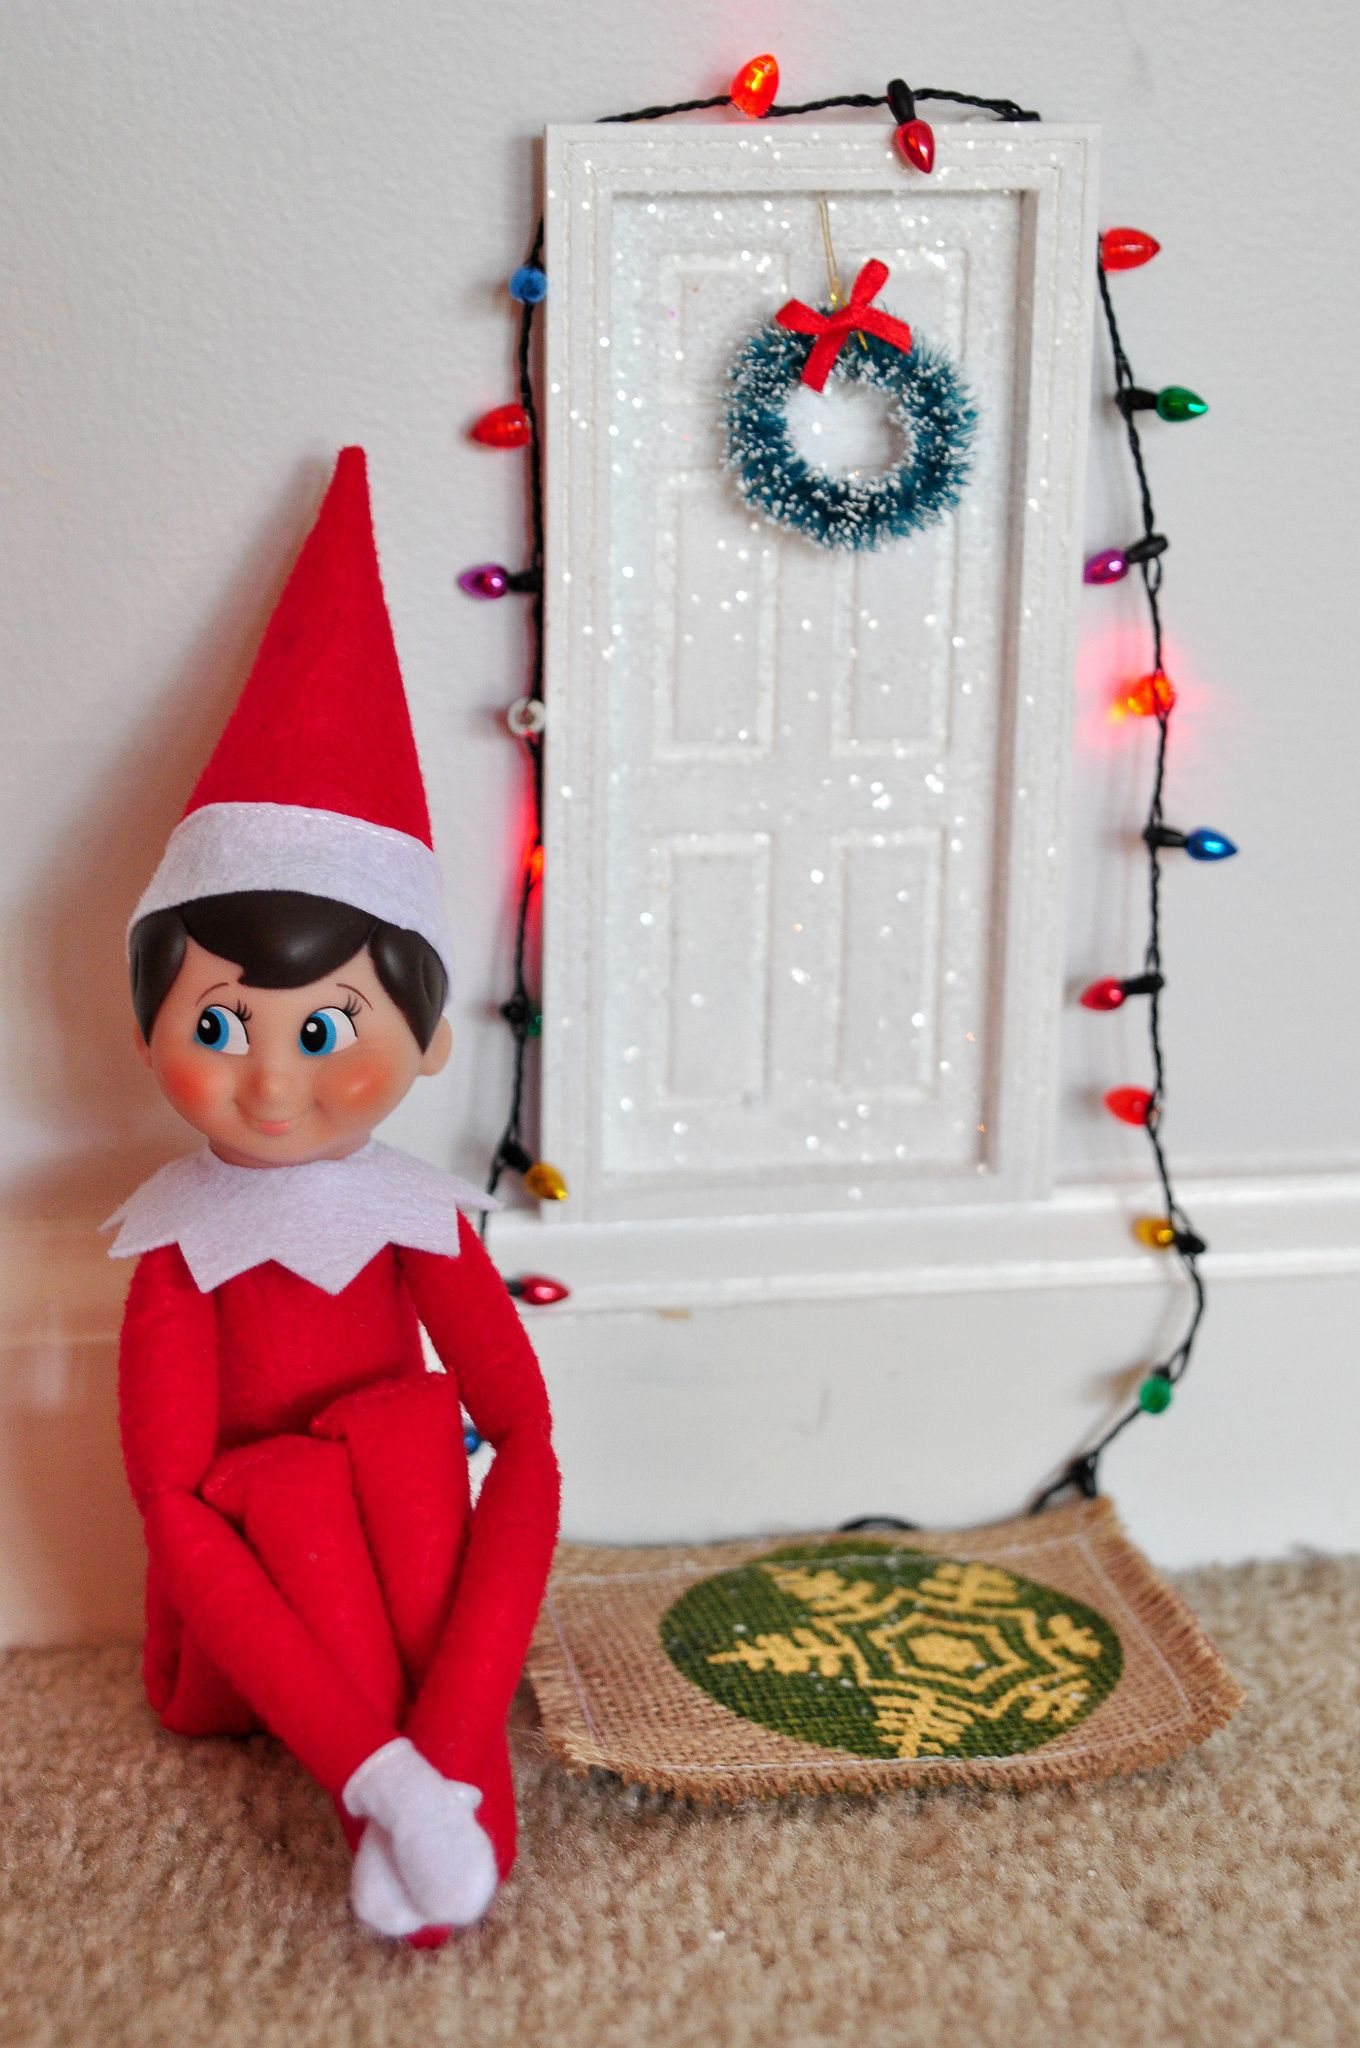 Elf On The Shelf Brings The Antics To The Kitchen Elf On The Shelf Elf Christmas Time